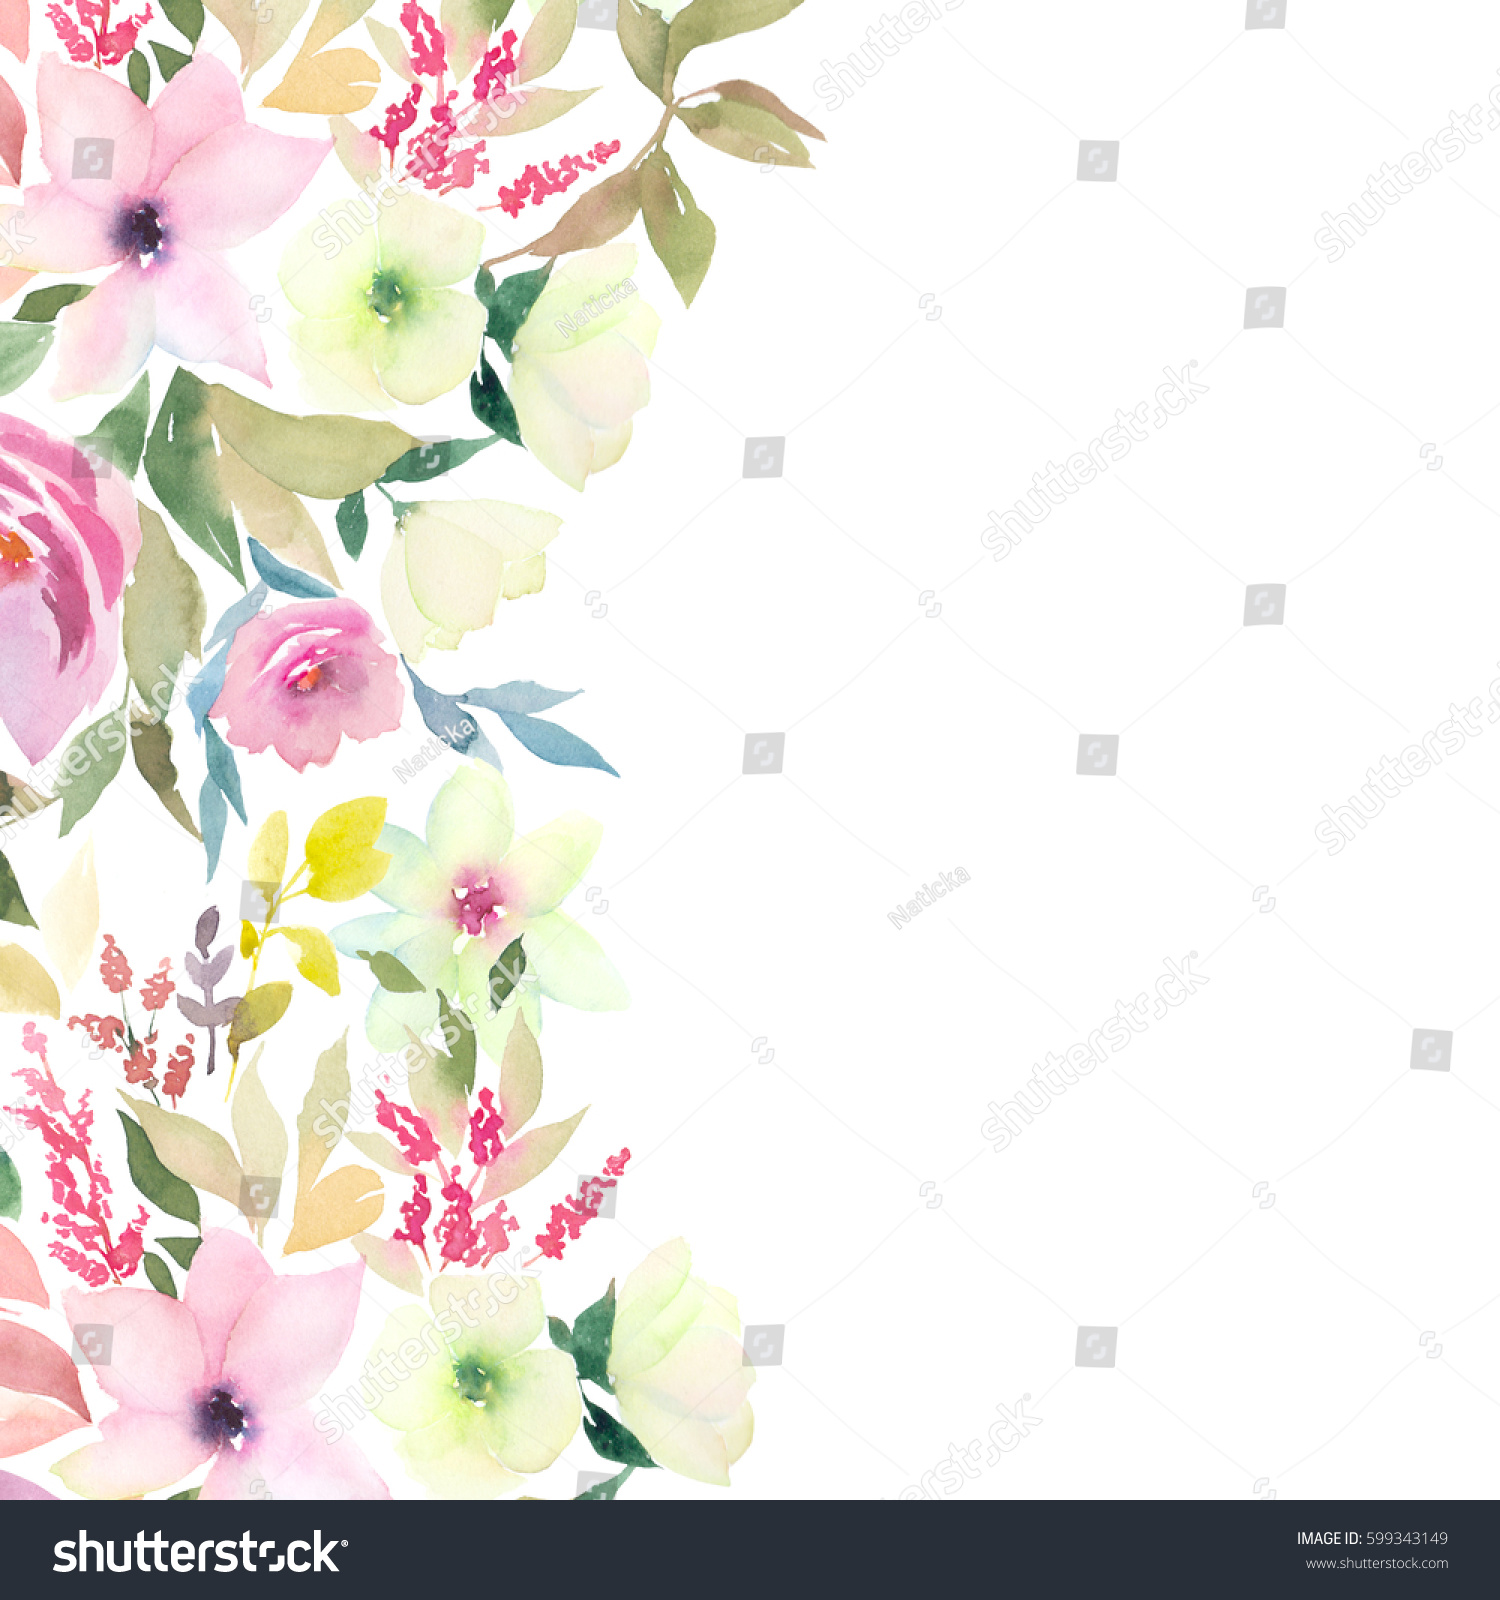 Watercolor template greeting wedding cards stock illustration watercolor template for greeting wedding cards kristyandbryce Choice Image